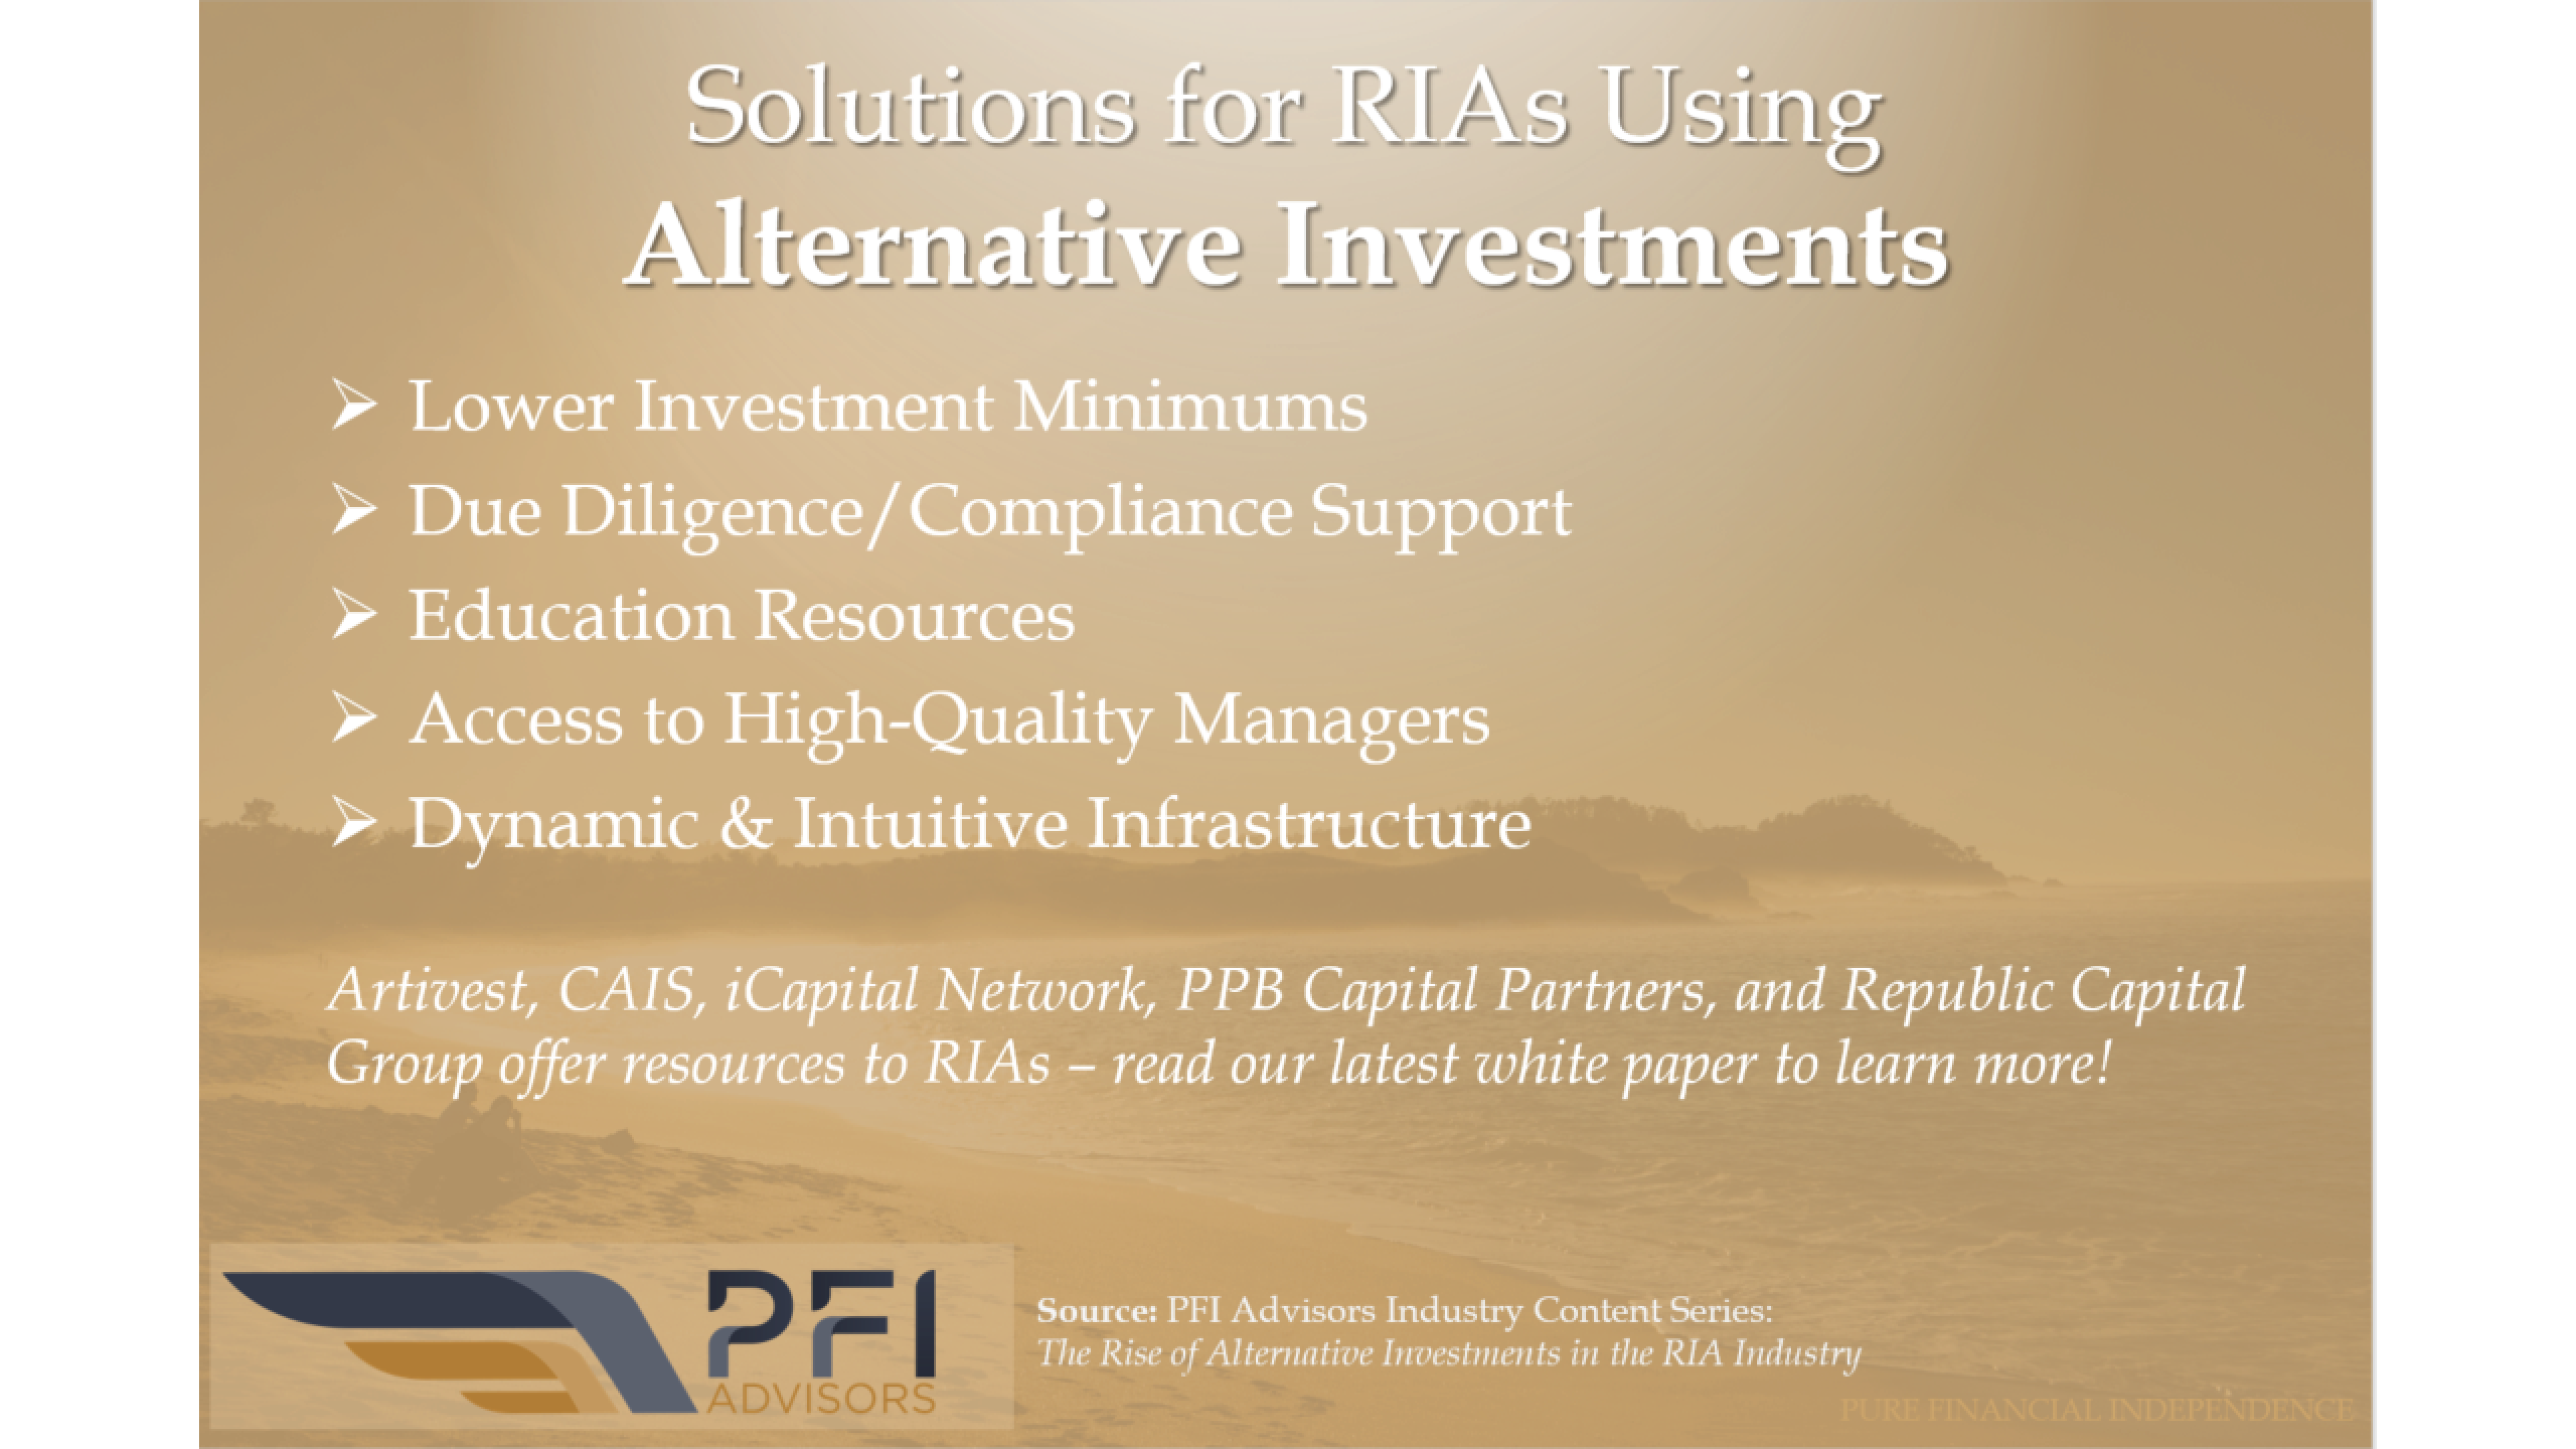 The Rise of Alternative Investments in the RIA Industry